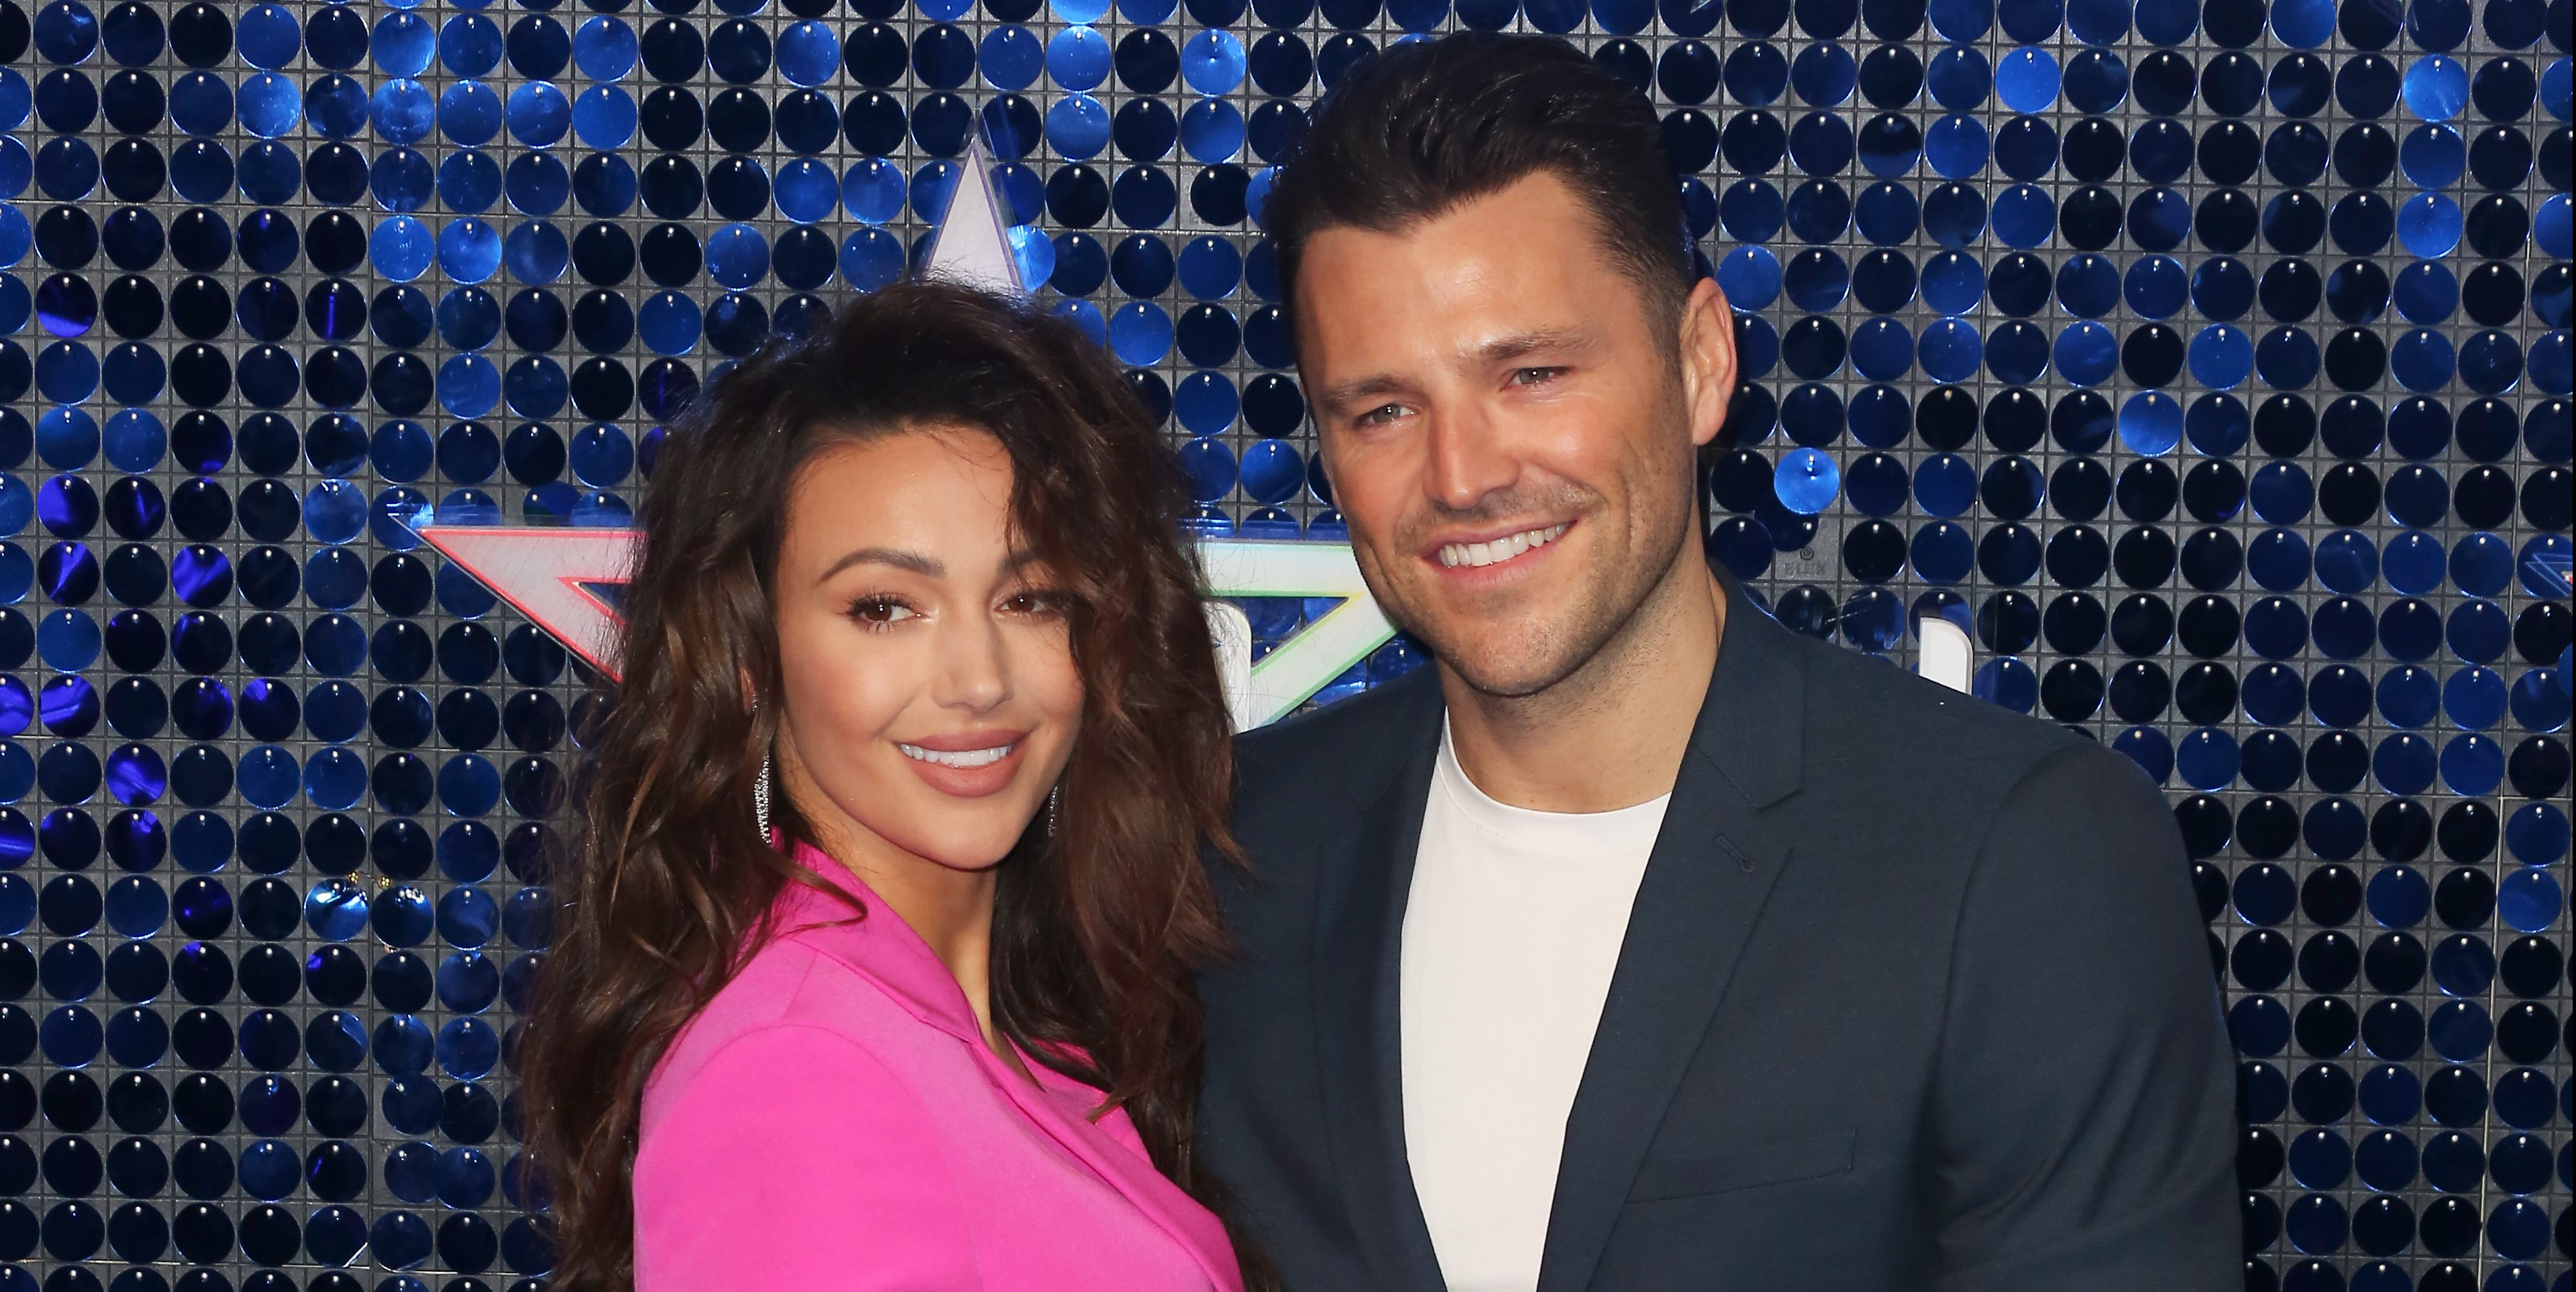 Mark Wright 'grovelled' to Michelle Keegan after 'ruining Christmas Eve'